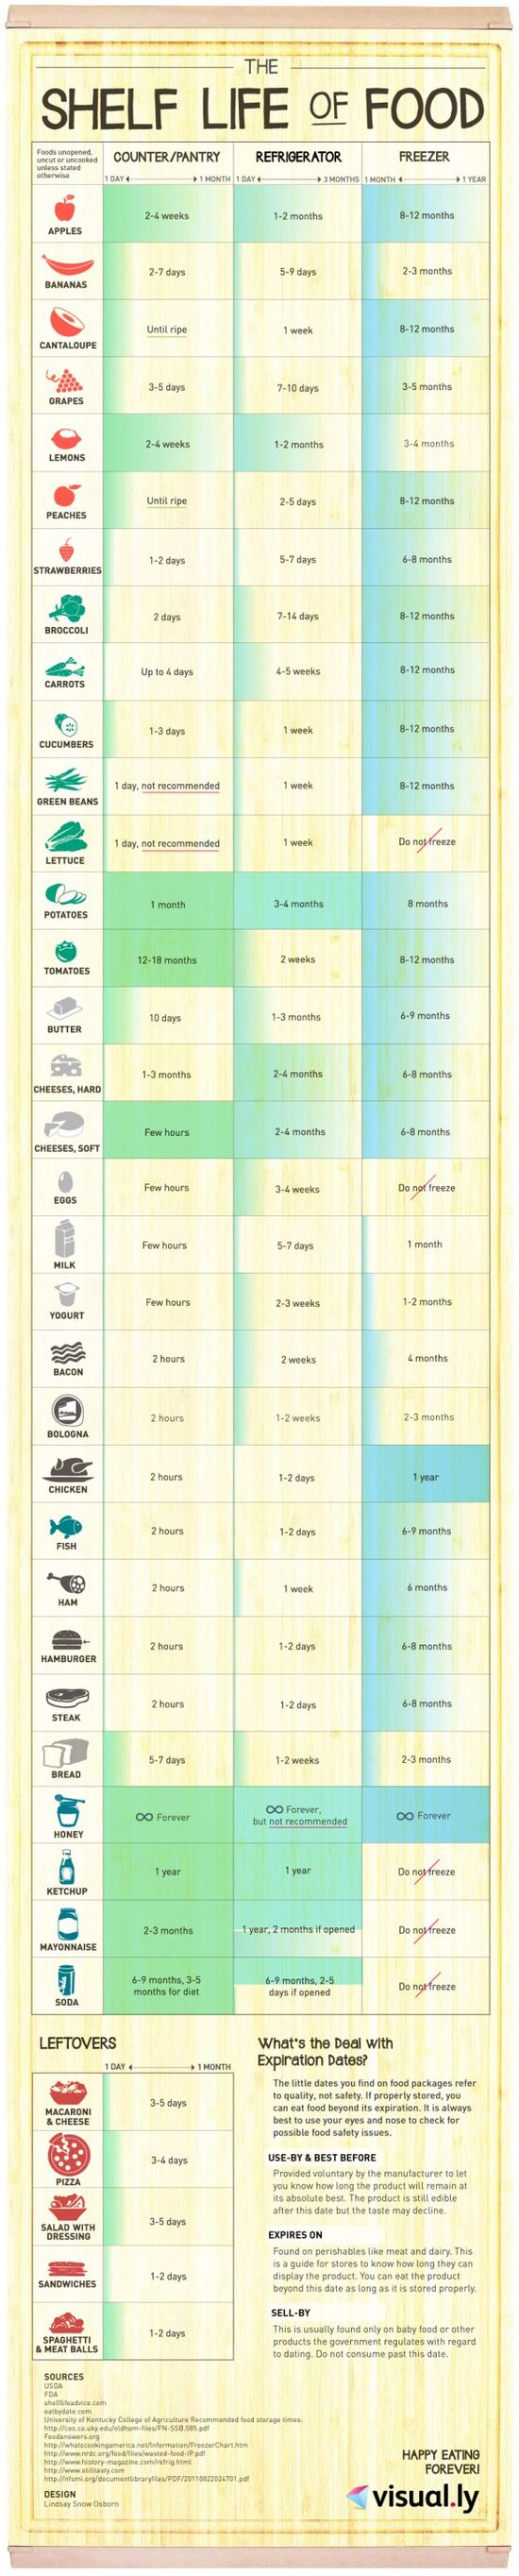 The Shelf Life of Food – Really cool graphic!